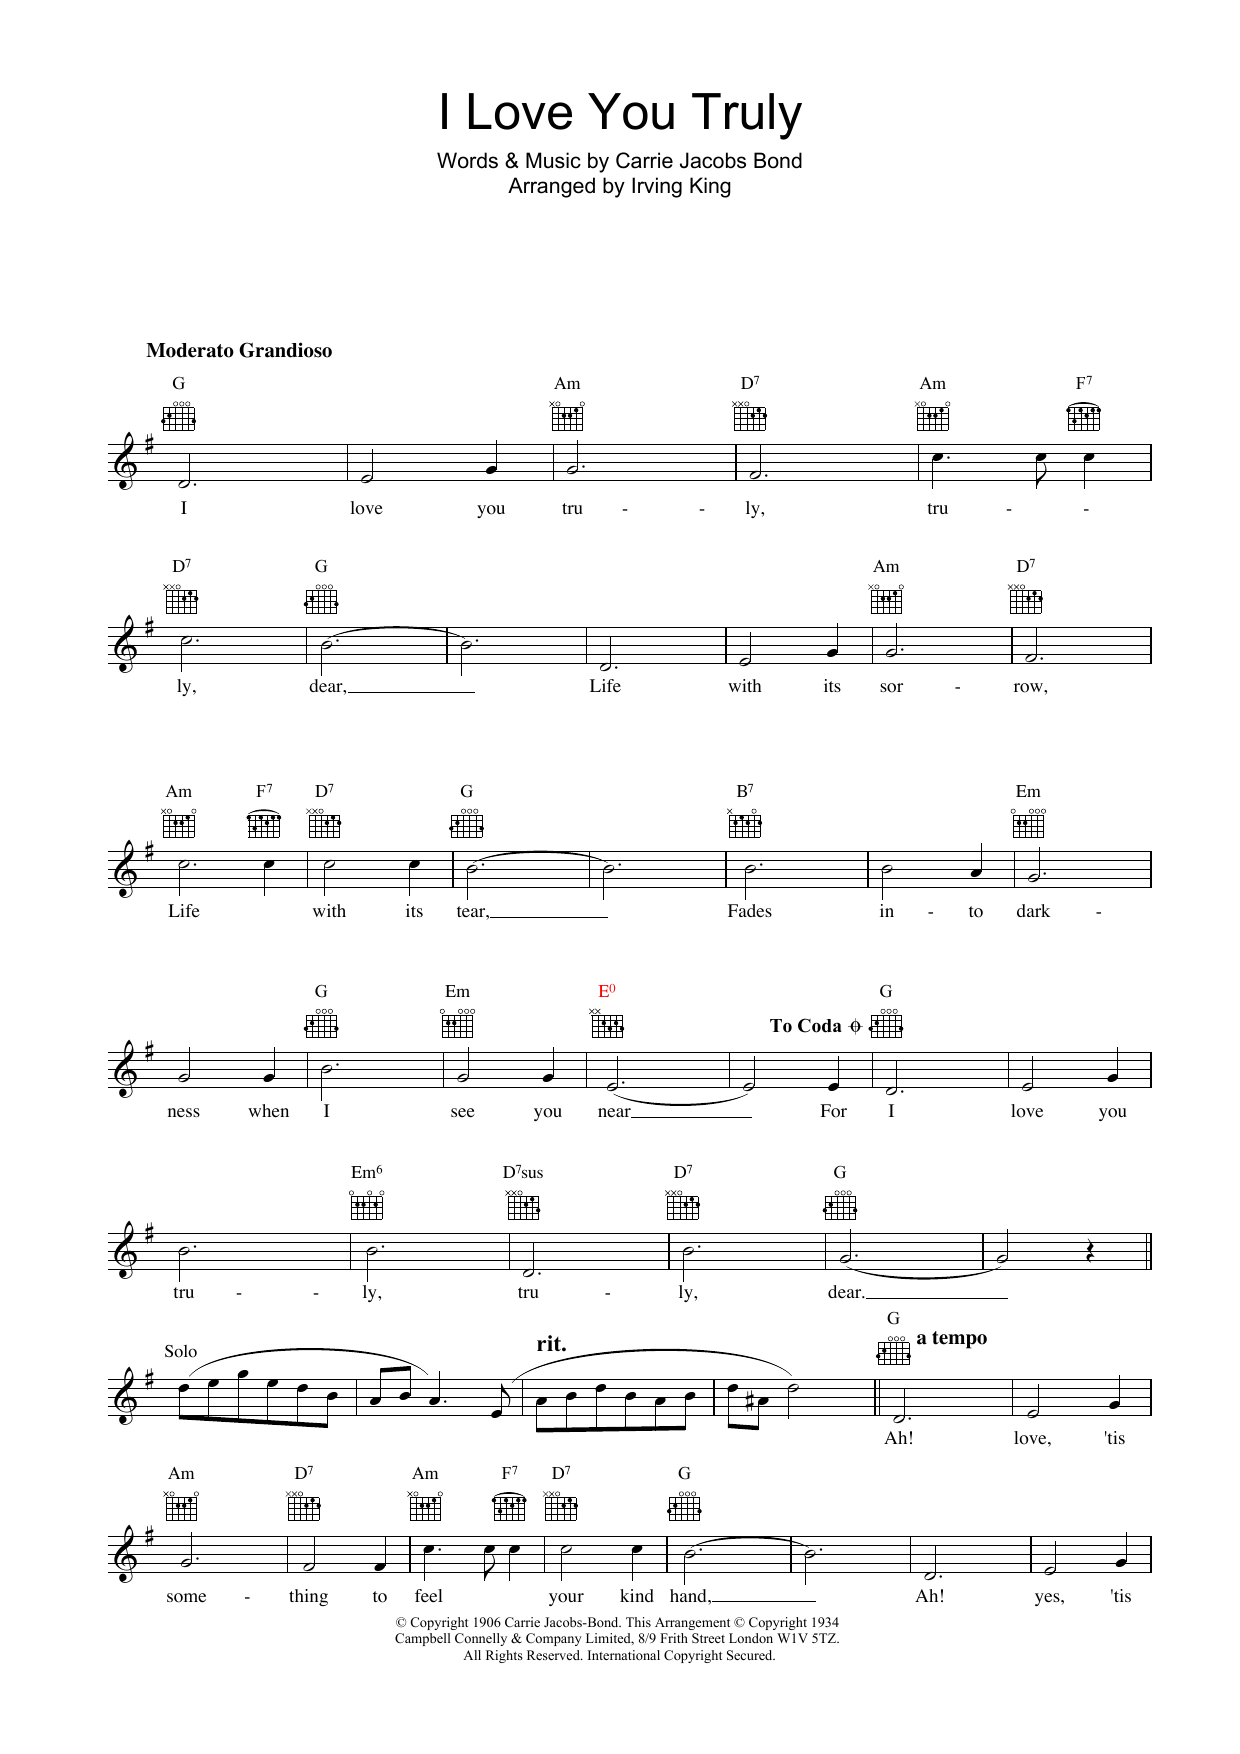 I Love You Truly Sheet Music